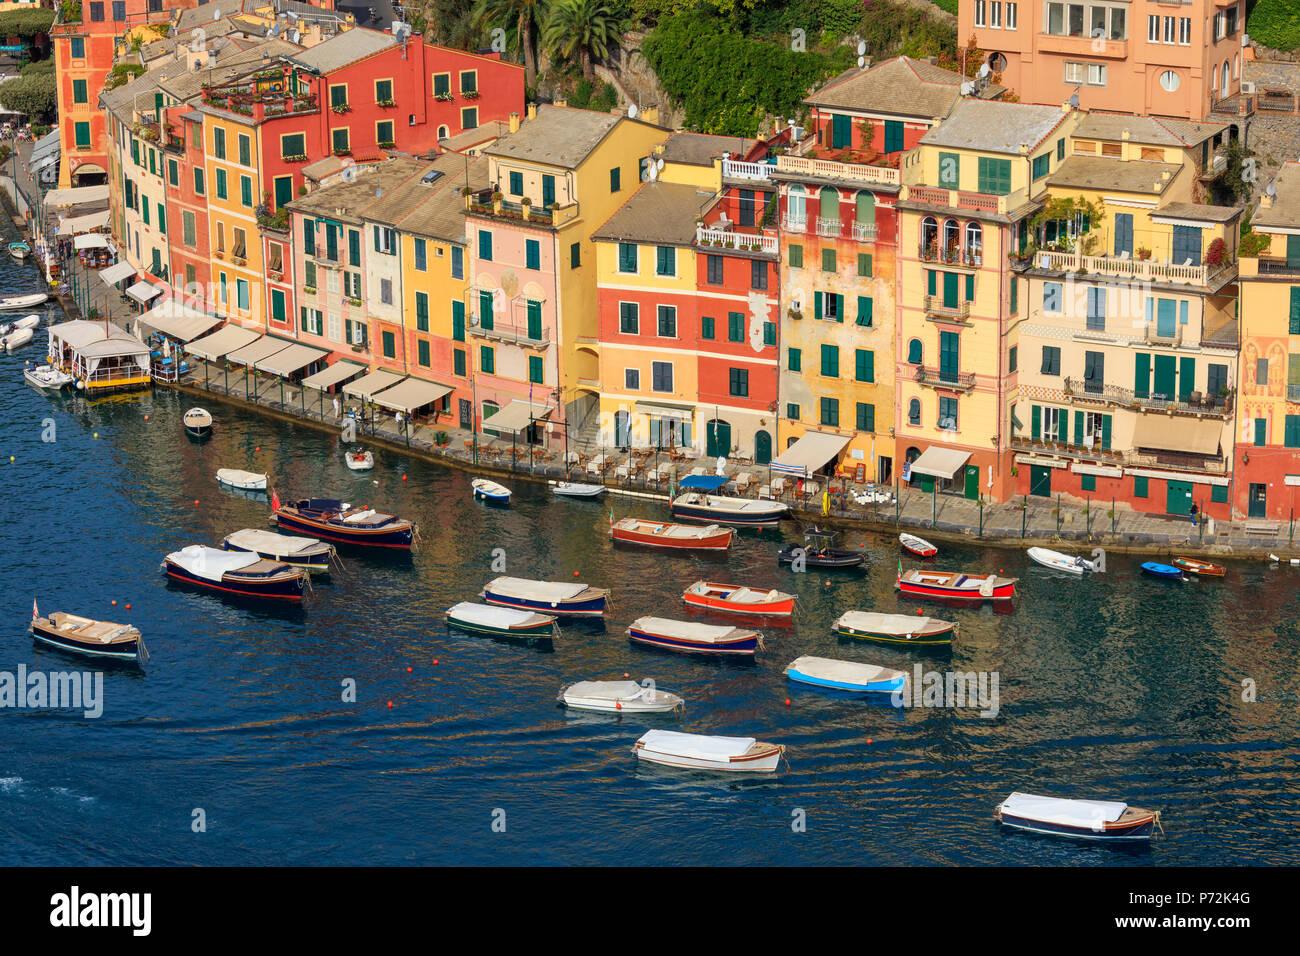 Harbour and typical coloured houses, Portofino, province of Genoa, Liguria, Italy, Europe - Stock Image